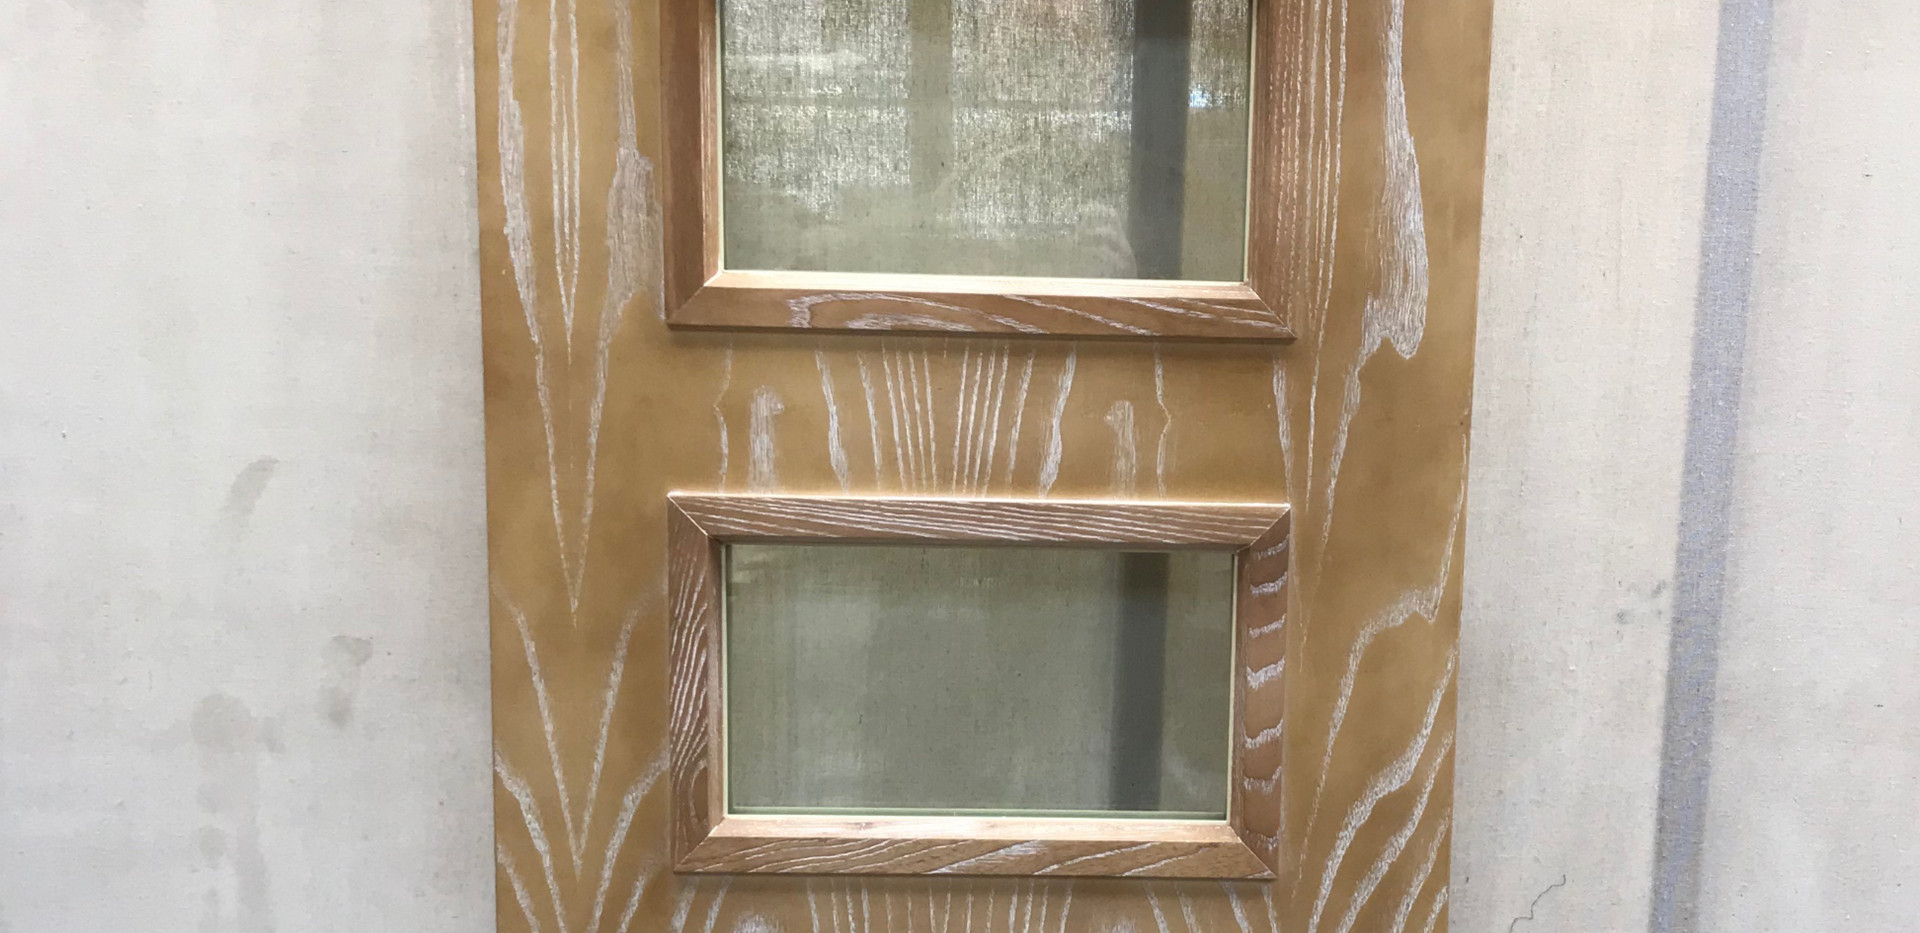 Lime Wash Fire Door with Windows